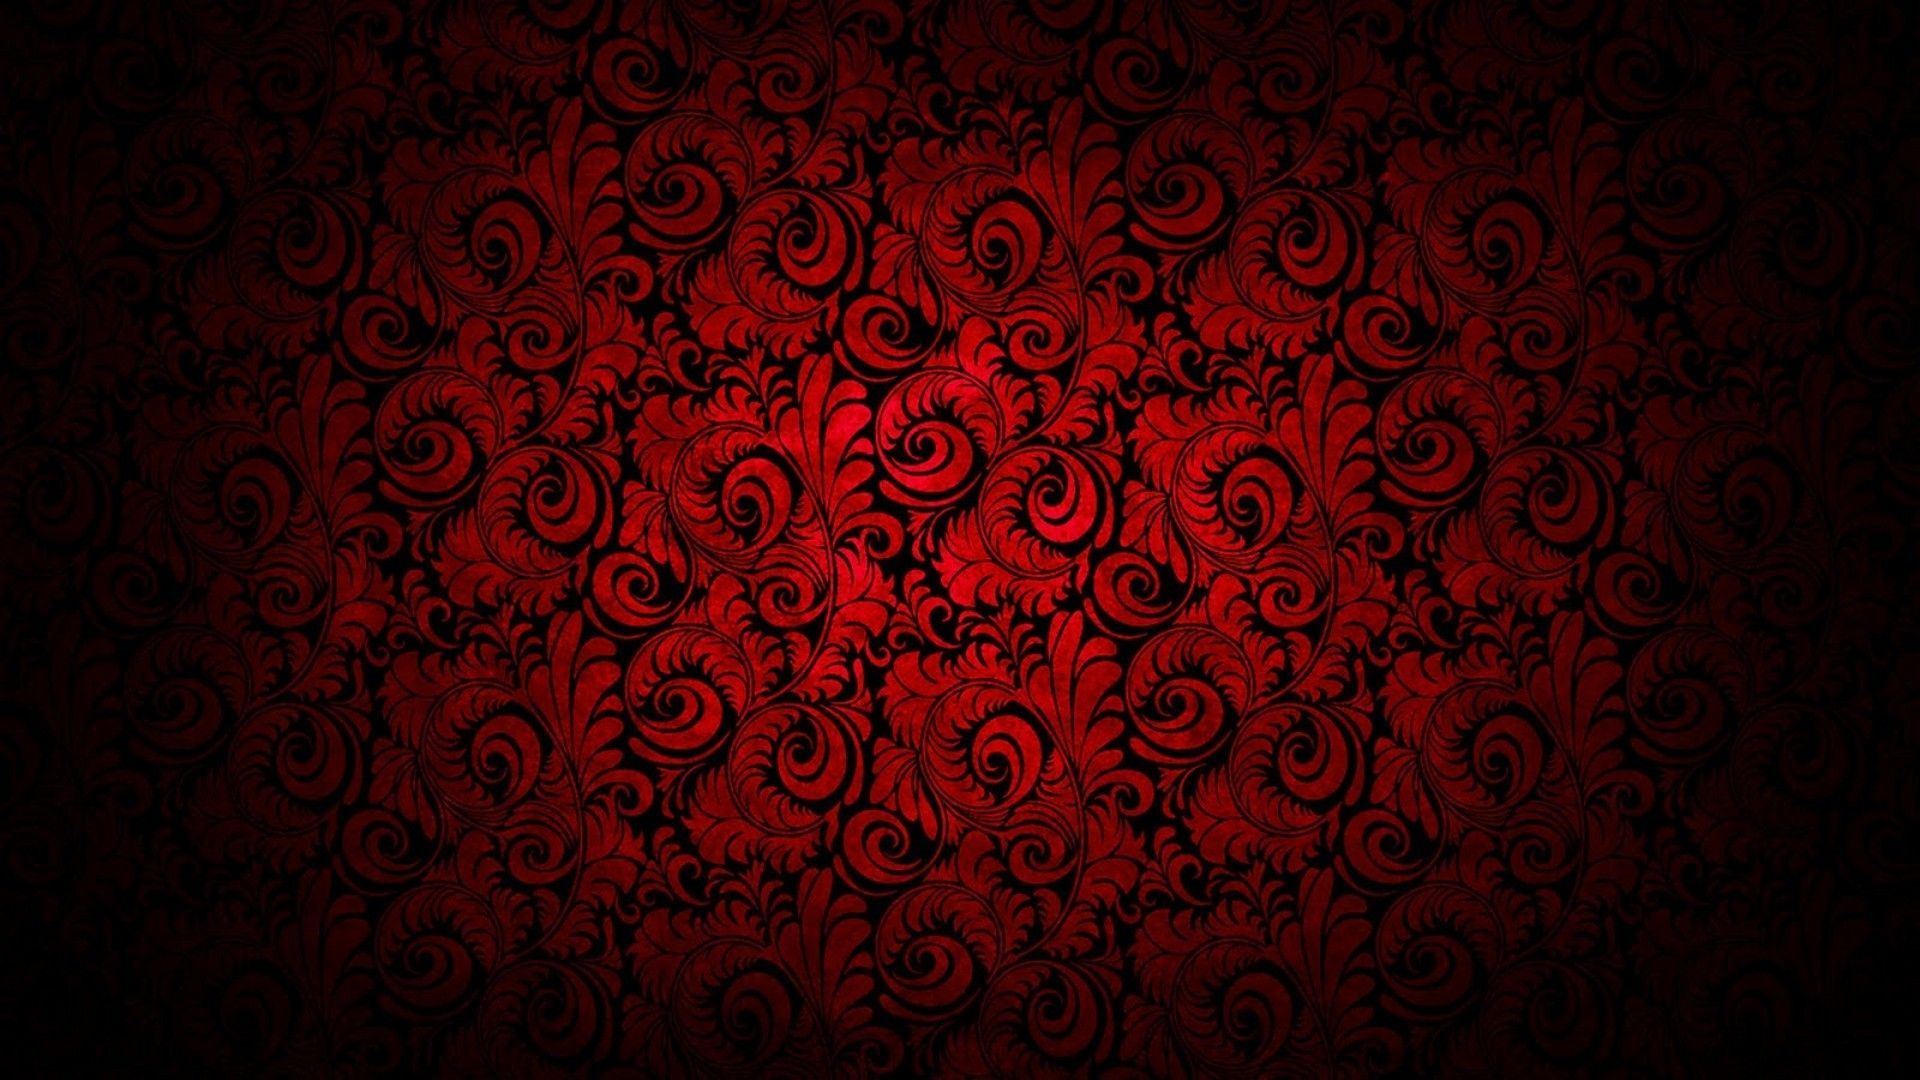 Red Wallpapers Desktop Red And Black Background Red And Black Wallpaper Black Background Wallpaper